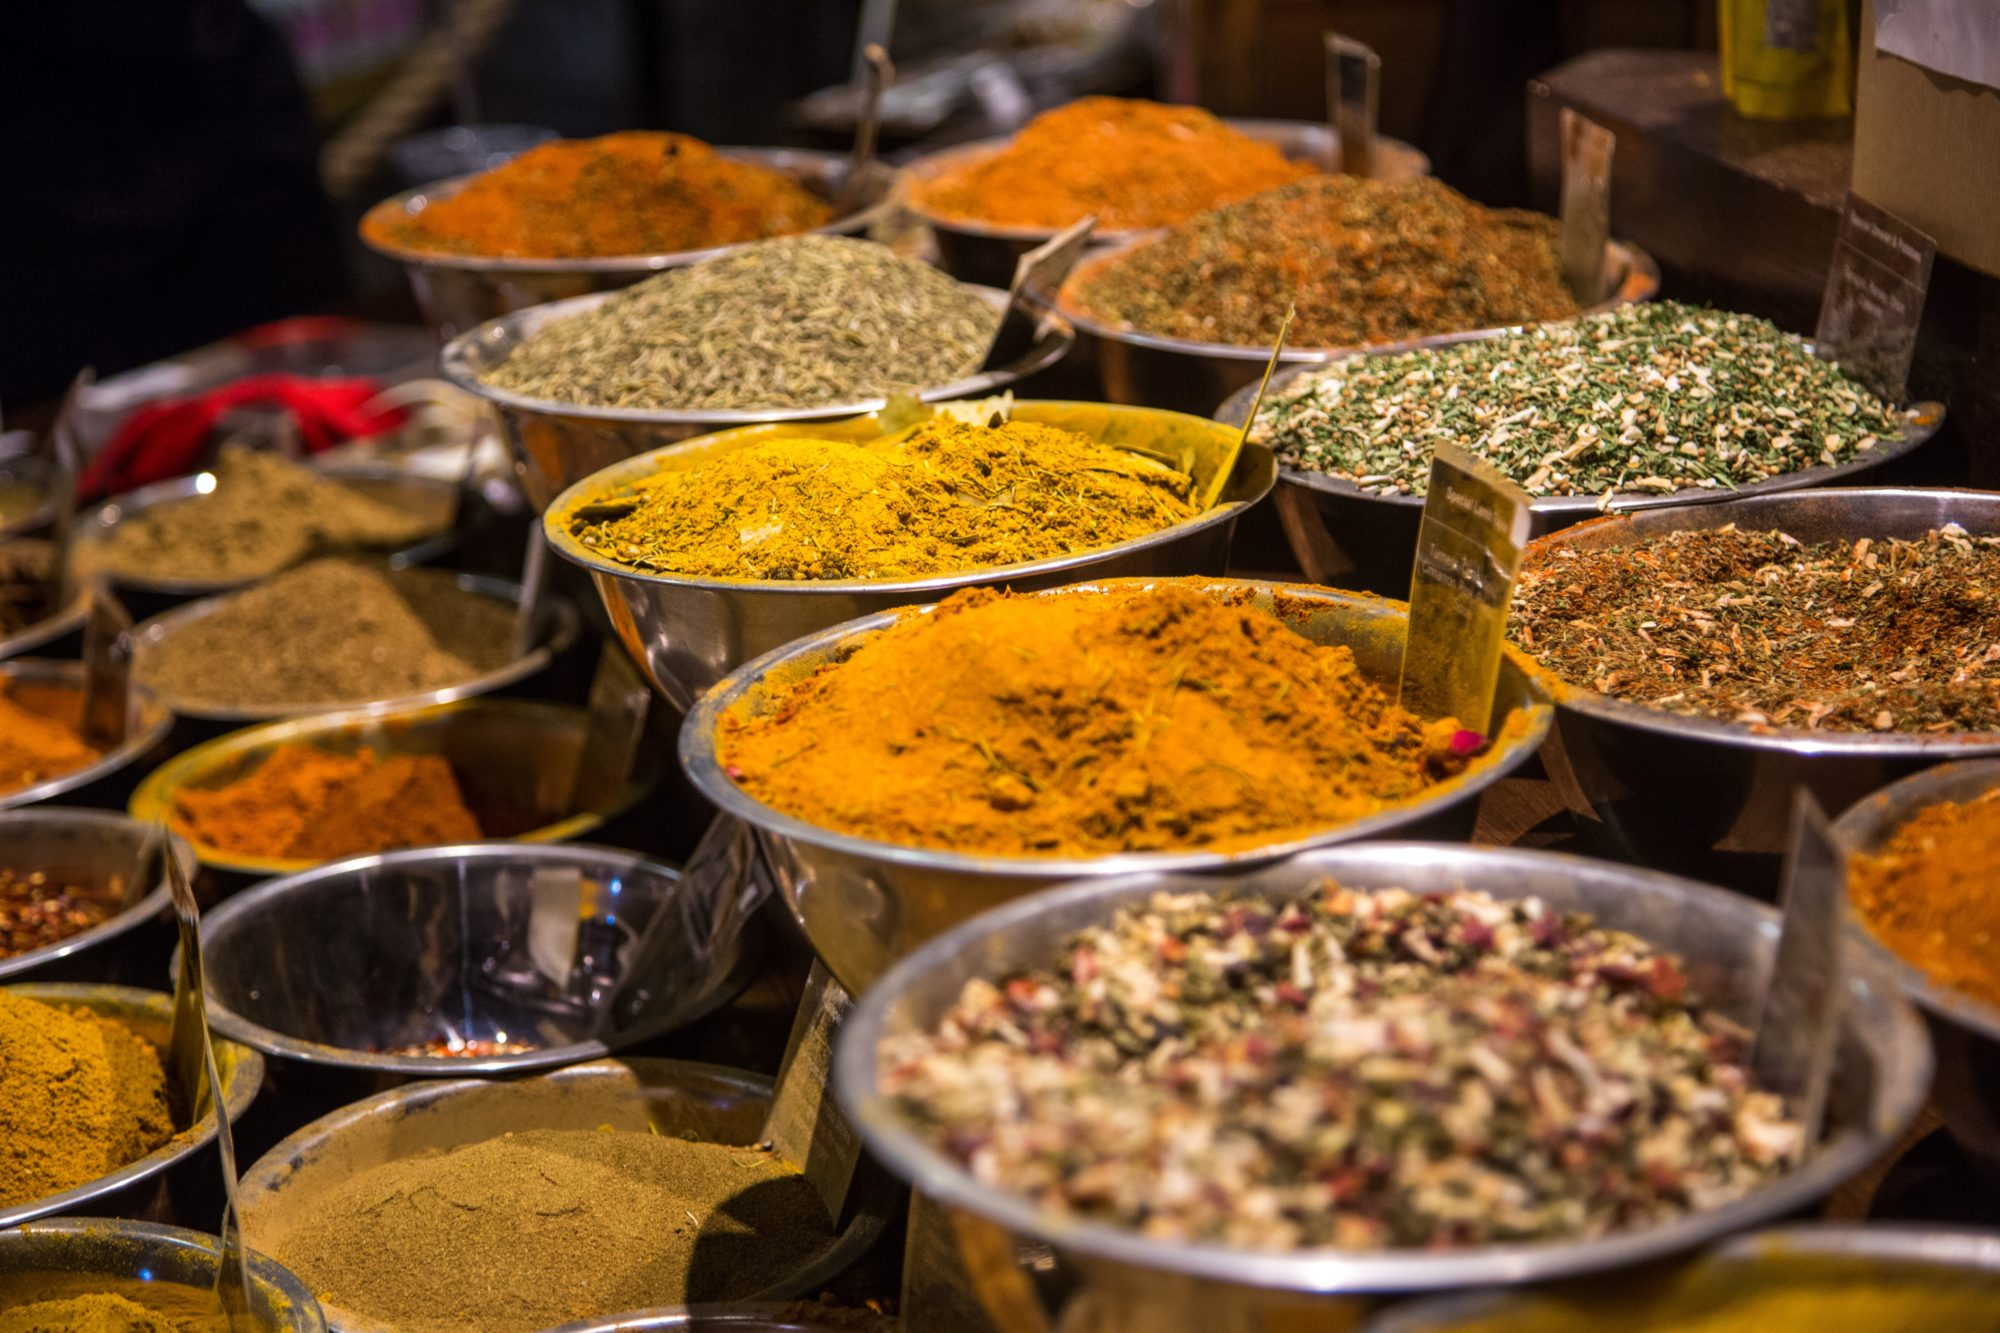 An array of spices in steel bowls